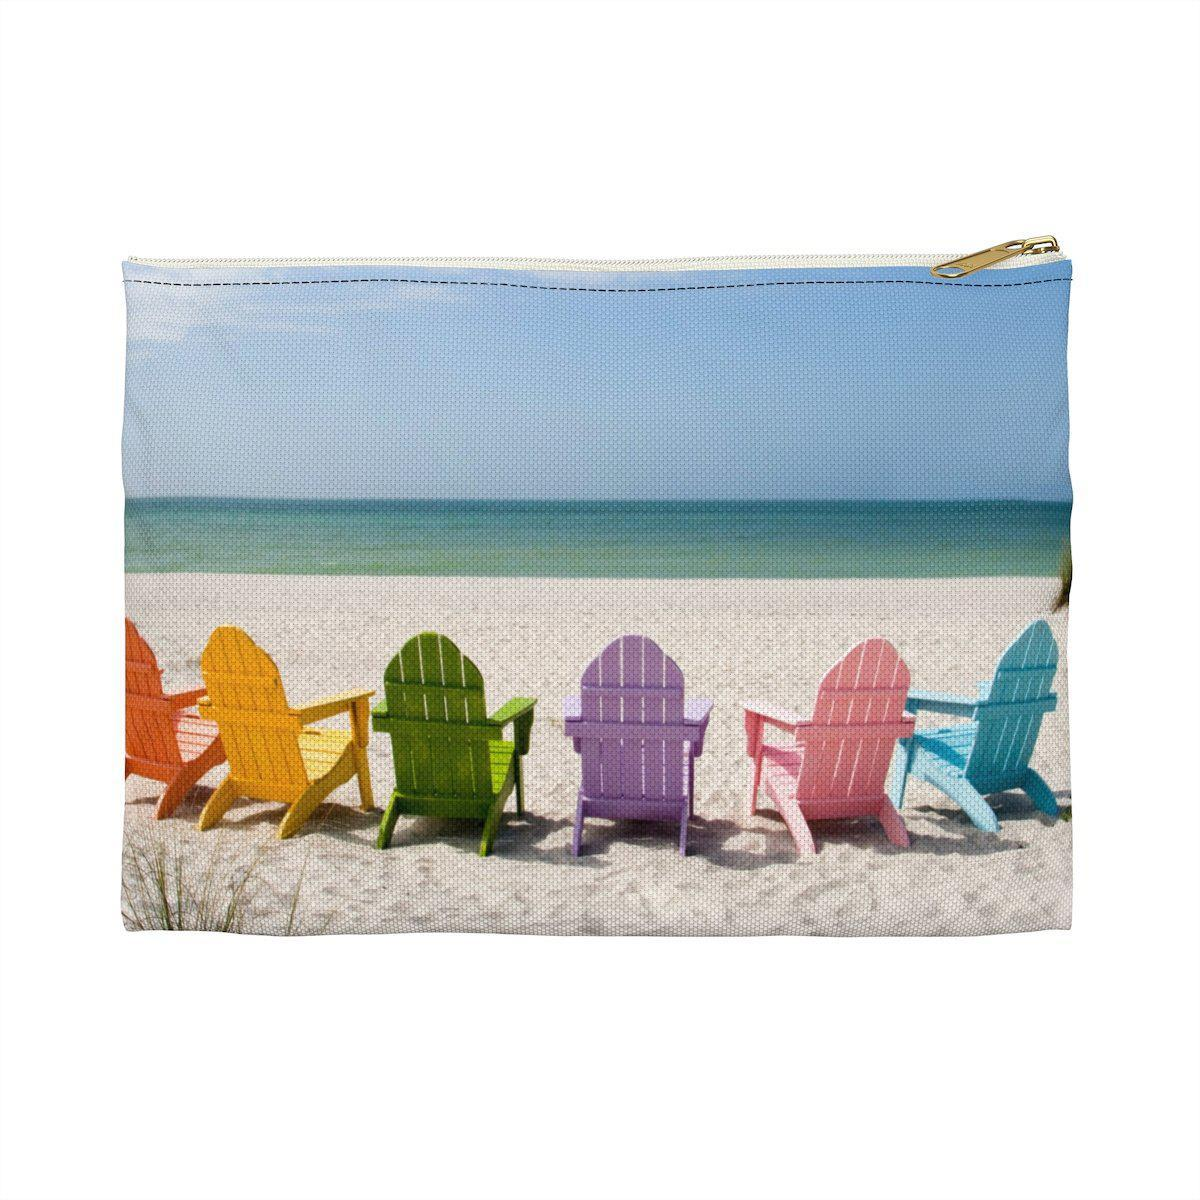 Bags-Me, You and the Beach Pouch-by Coastal Passion-Small Large Length, in 8.35 11.82 Height , in 5.99 8.35 Our flat pouches vary from small to large and can be used for pretty much anything. They make excellent pencil cases and cosmetic travel bags. They are constructed of a durable material with a zipper closure. .: 100% Polyester .: Multiple sizes .: Flat corners .: With non-laminated lining